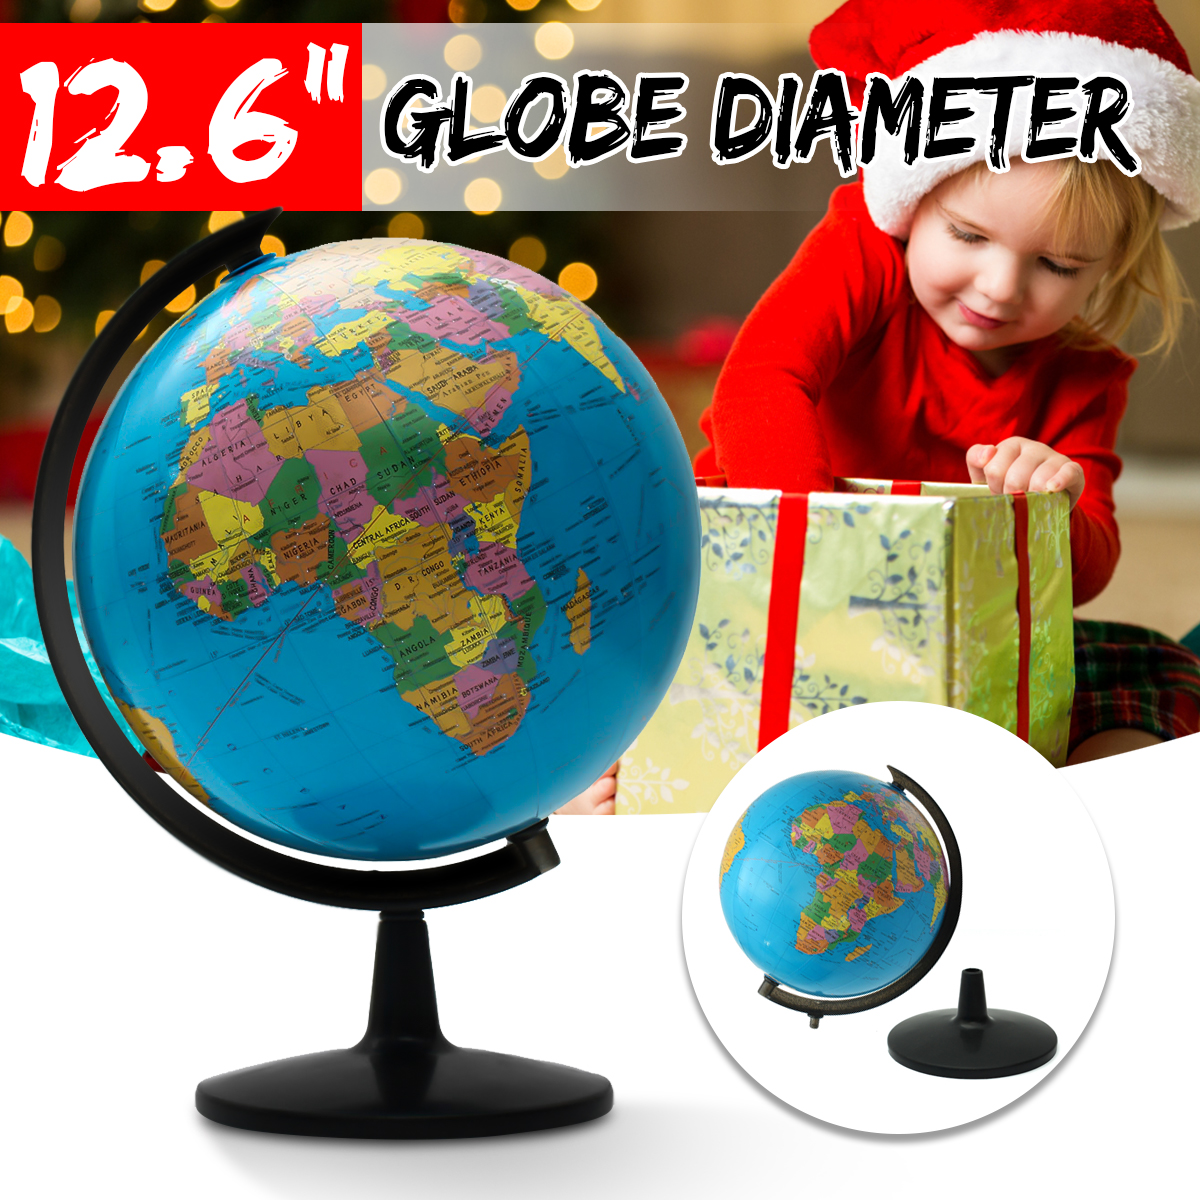 World Globe Map Ornaments With Swivel Stand Home Office Office Shop Desk Decor World Map Geography Educational Tool 32cm new led world map world globe rotating swivel map of earth geography globe figurines ornaments birthday gift home office decor